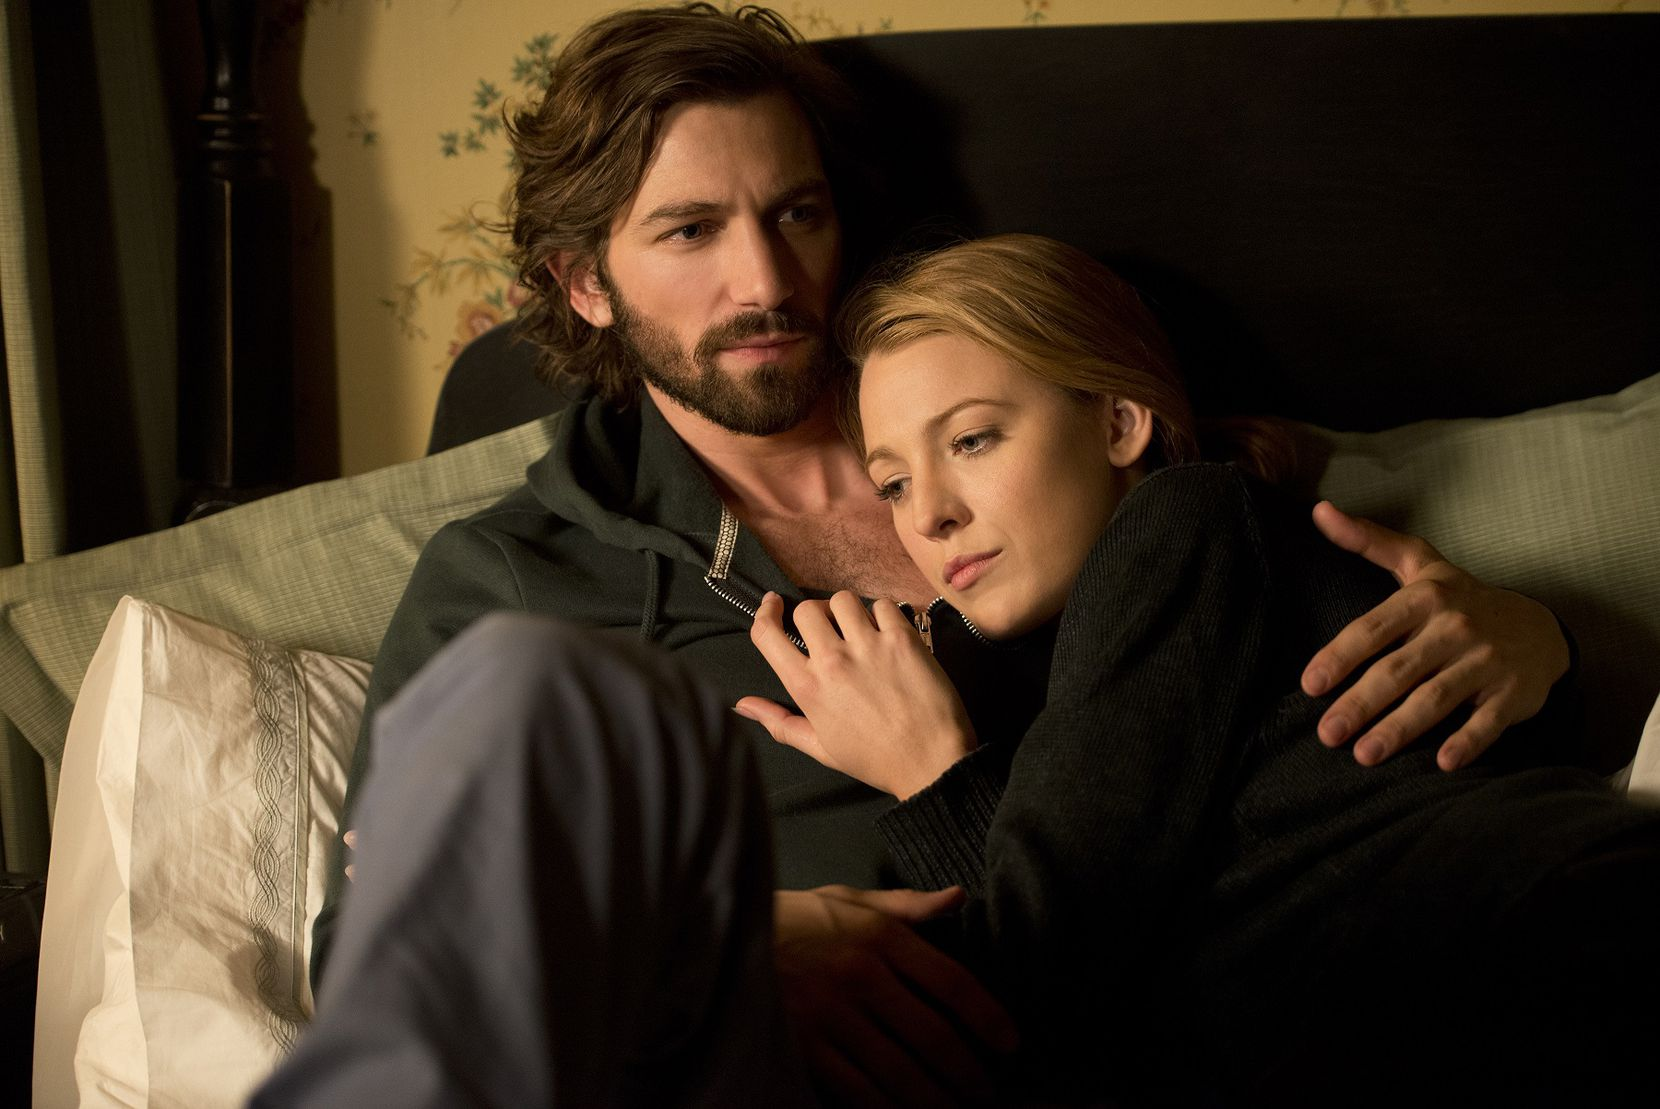 Michiel Huisman and Blake Lively in The Age of Adaline.